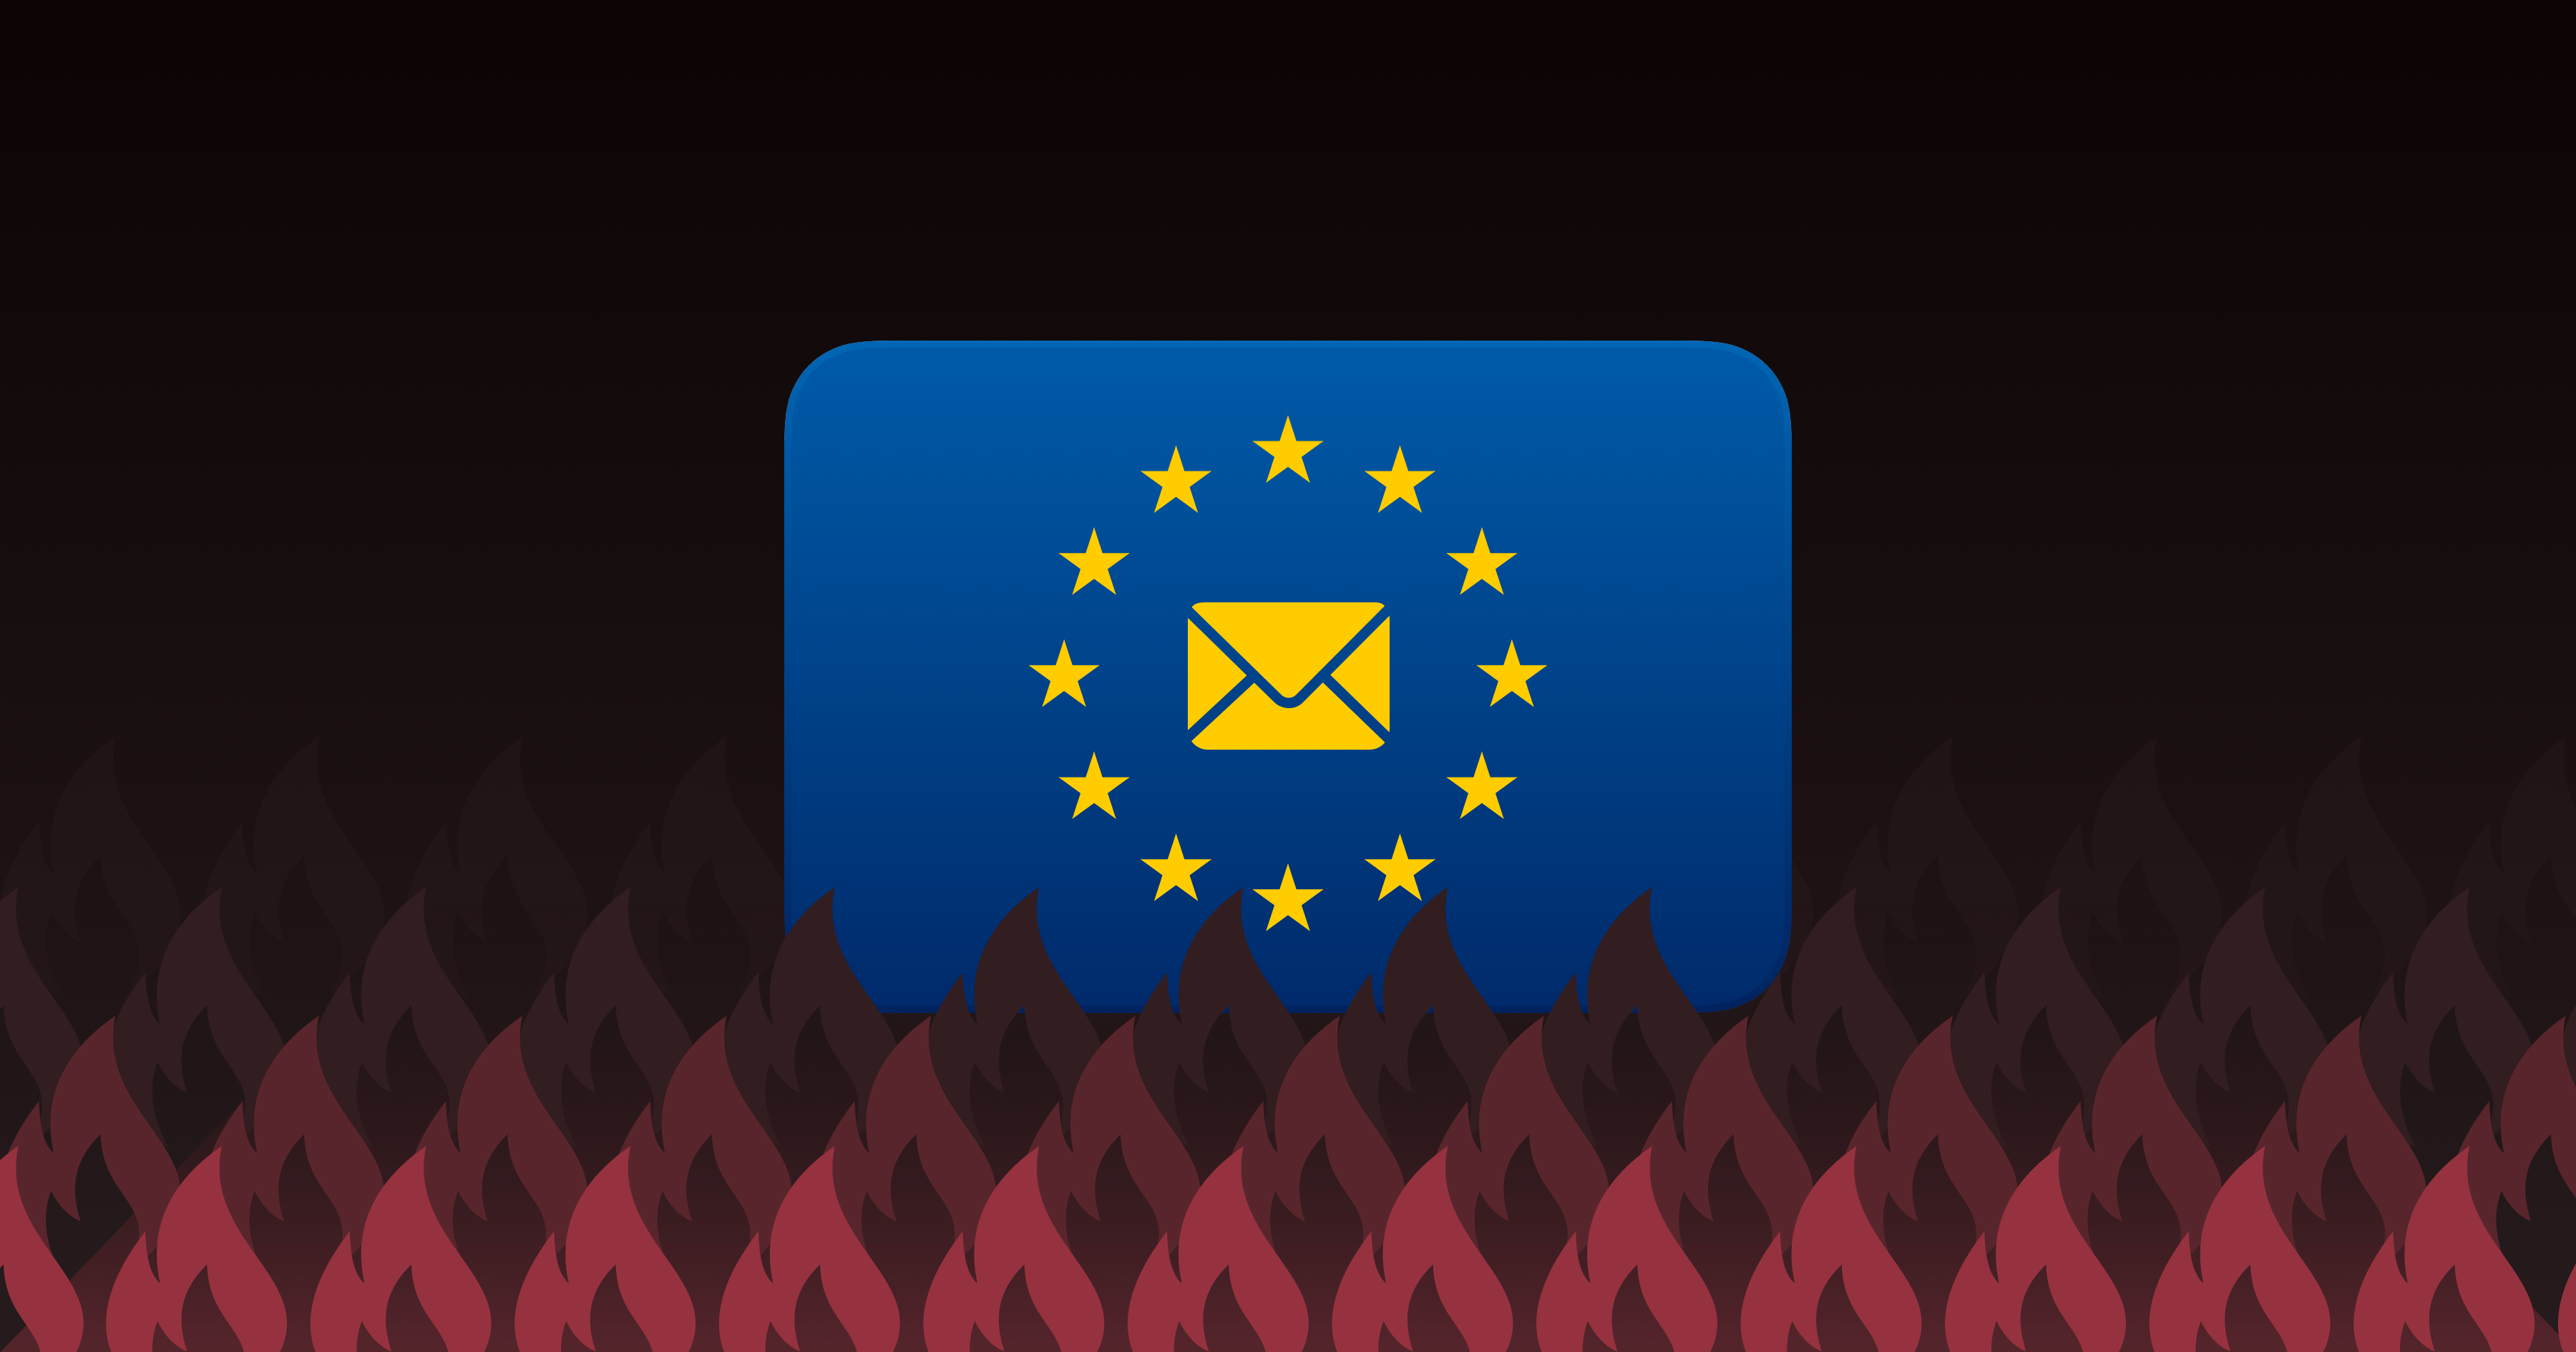 nightmare-gdpr-demand-letter-your-employee-wiretap-aware